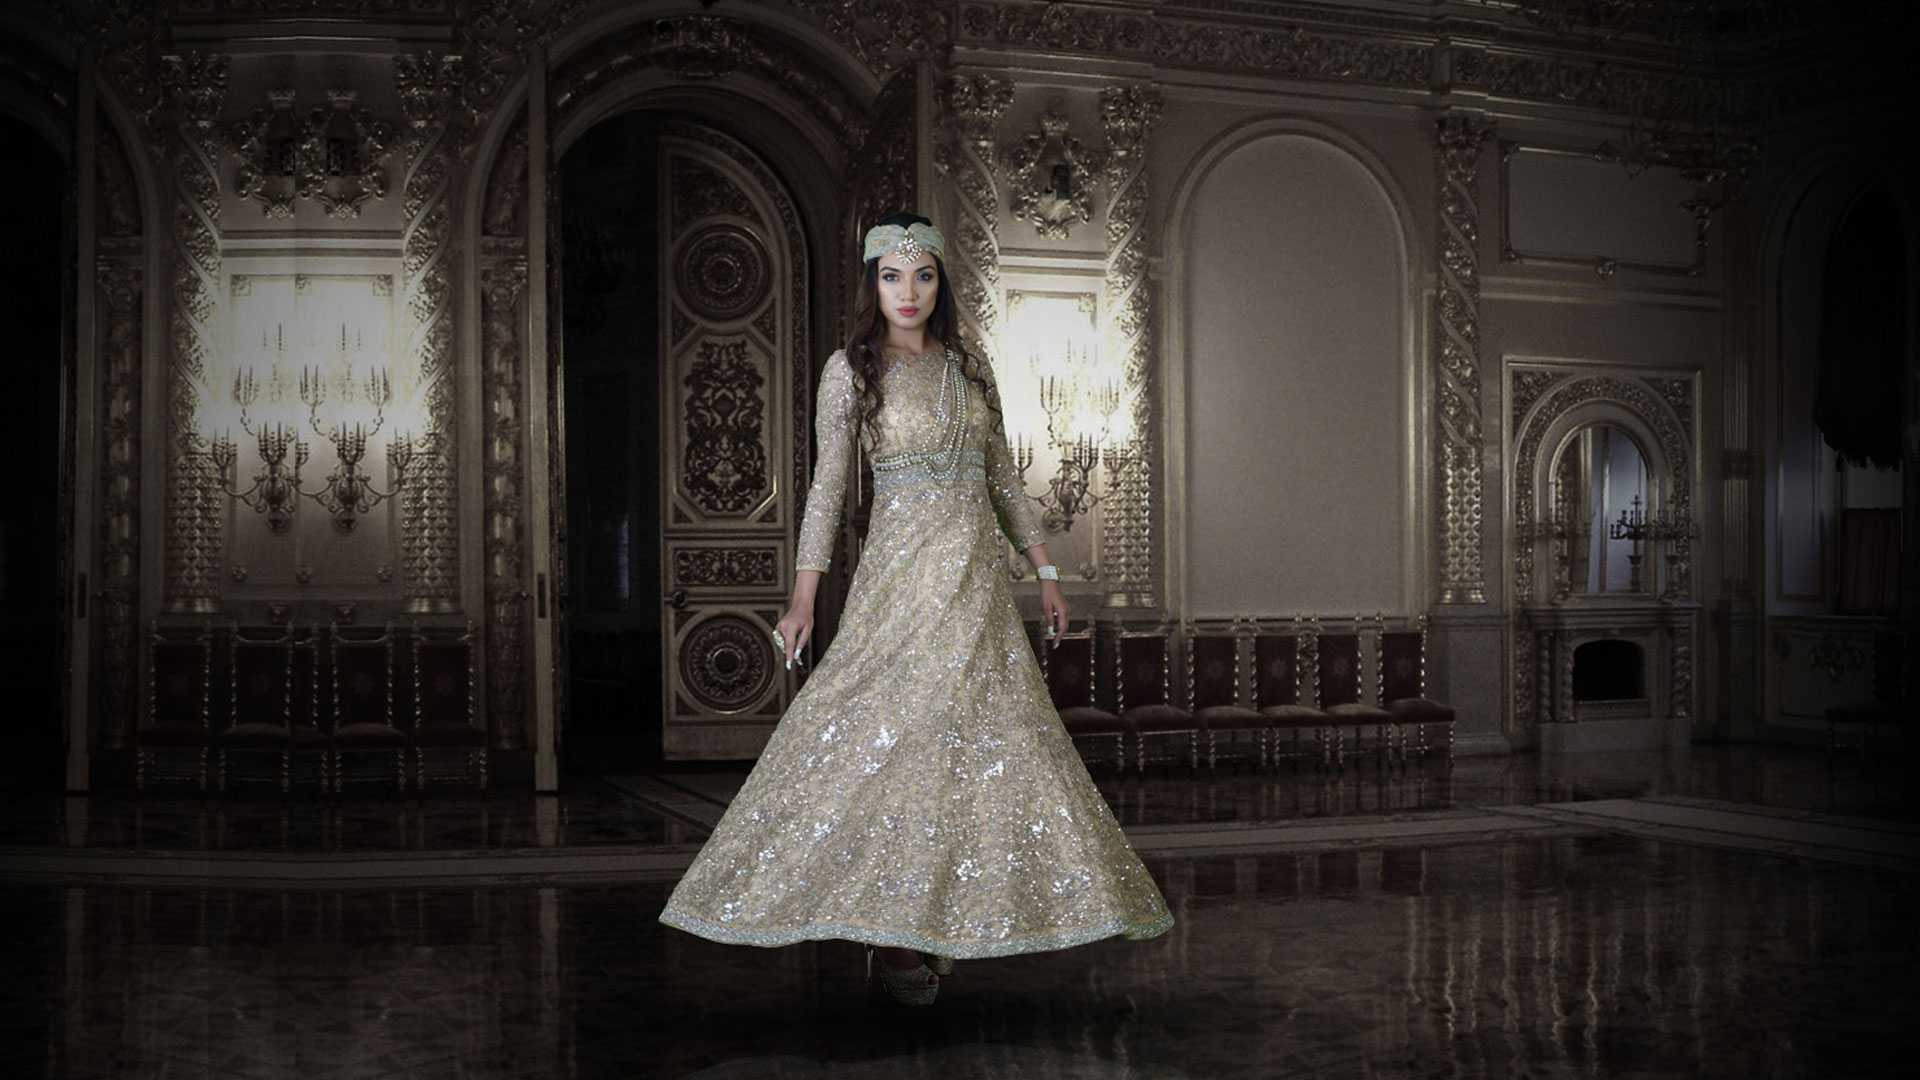 The Unique Colored Bridal Outfits from Our Bridal Collection